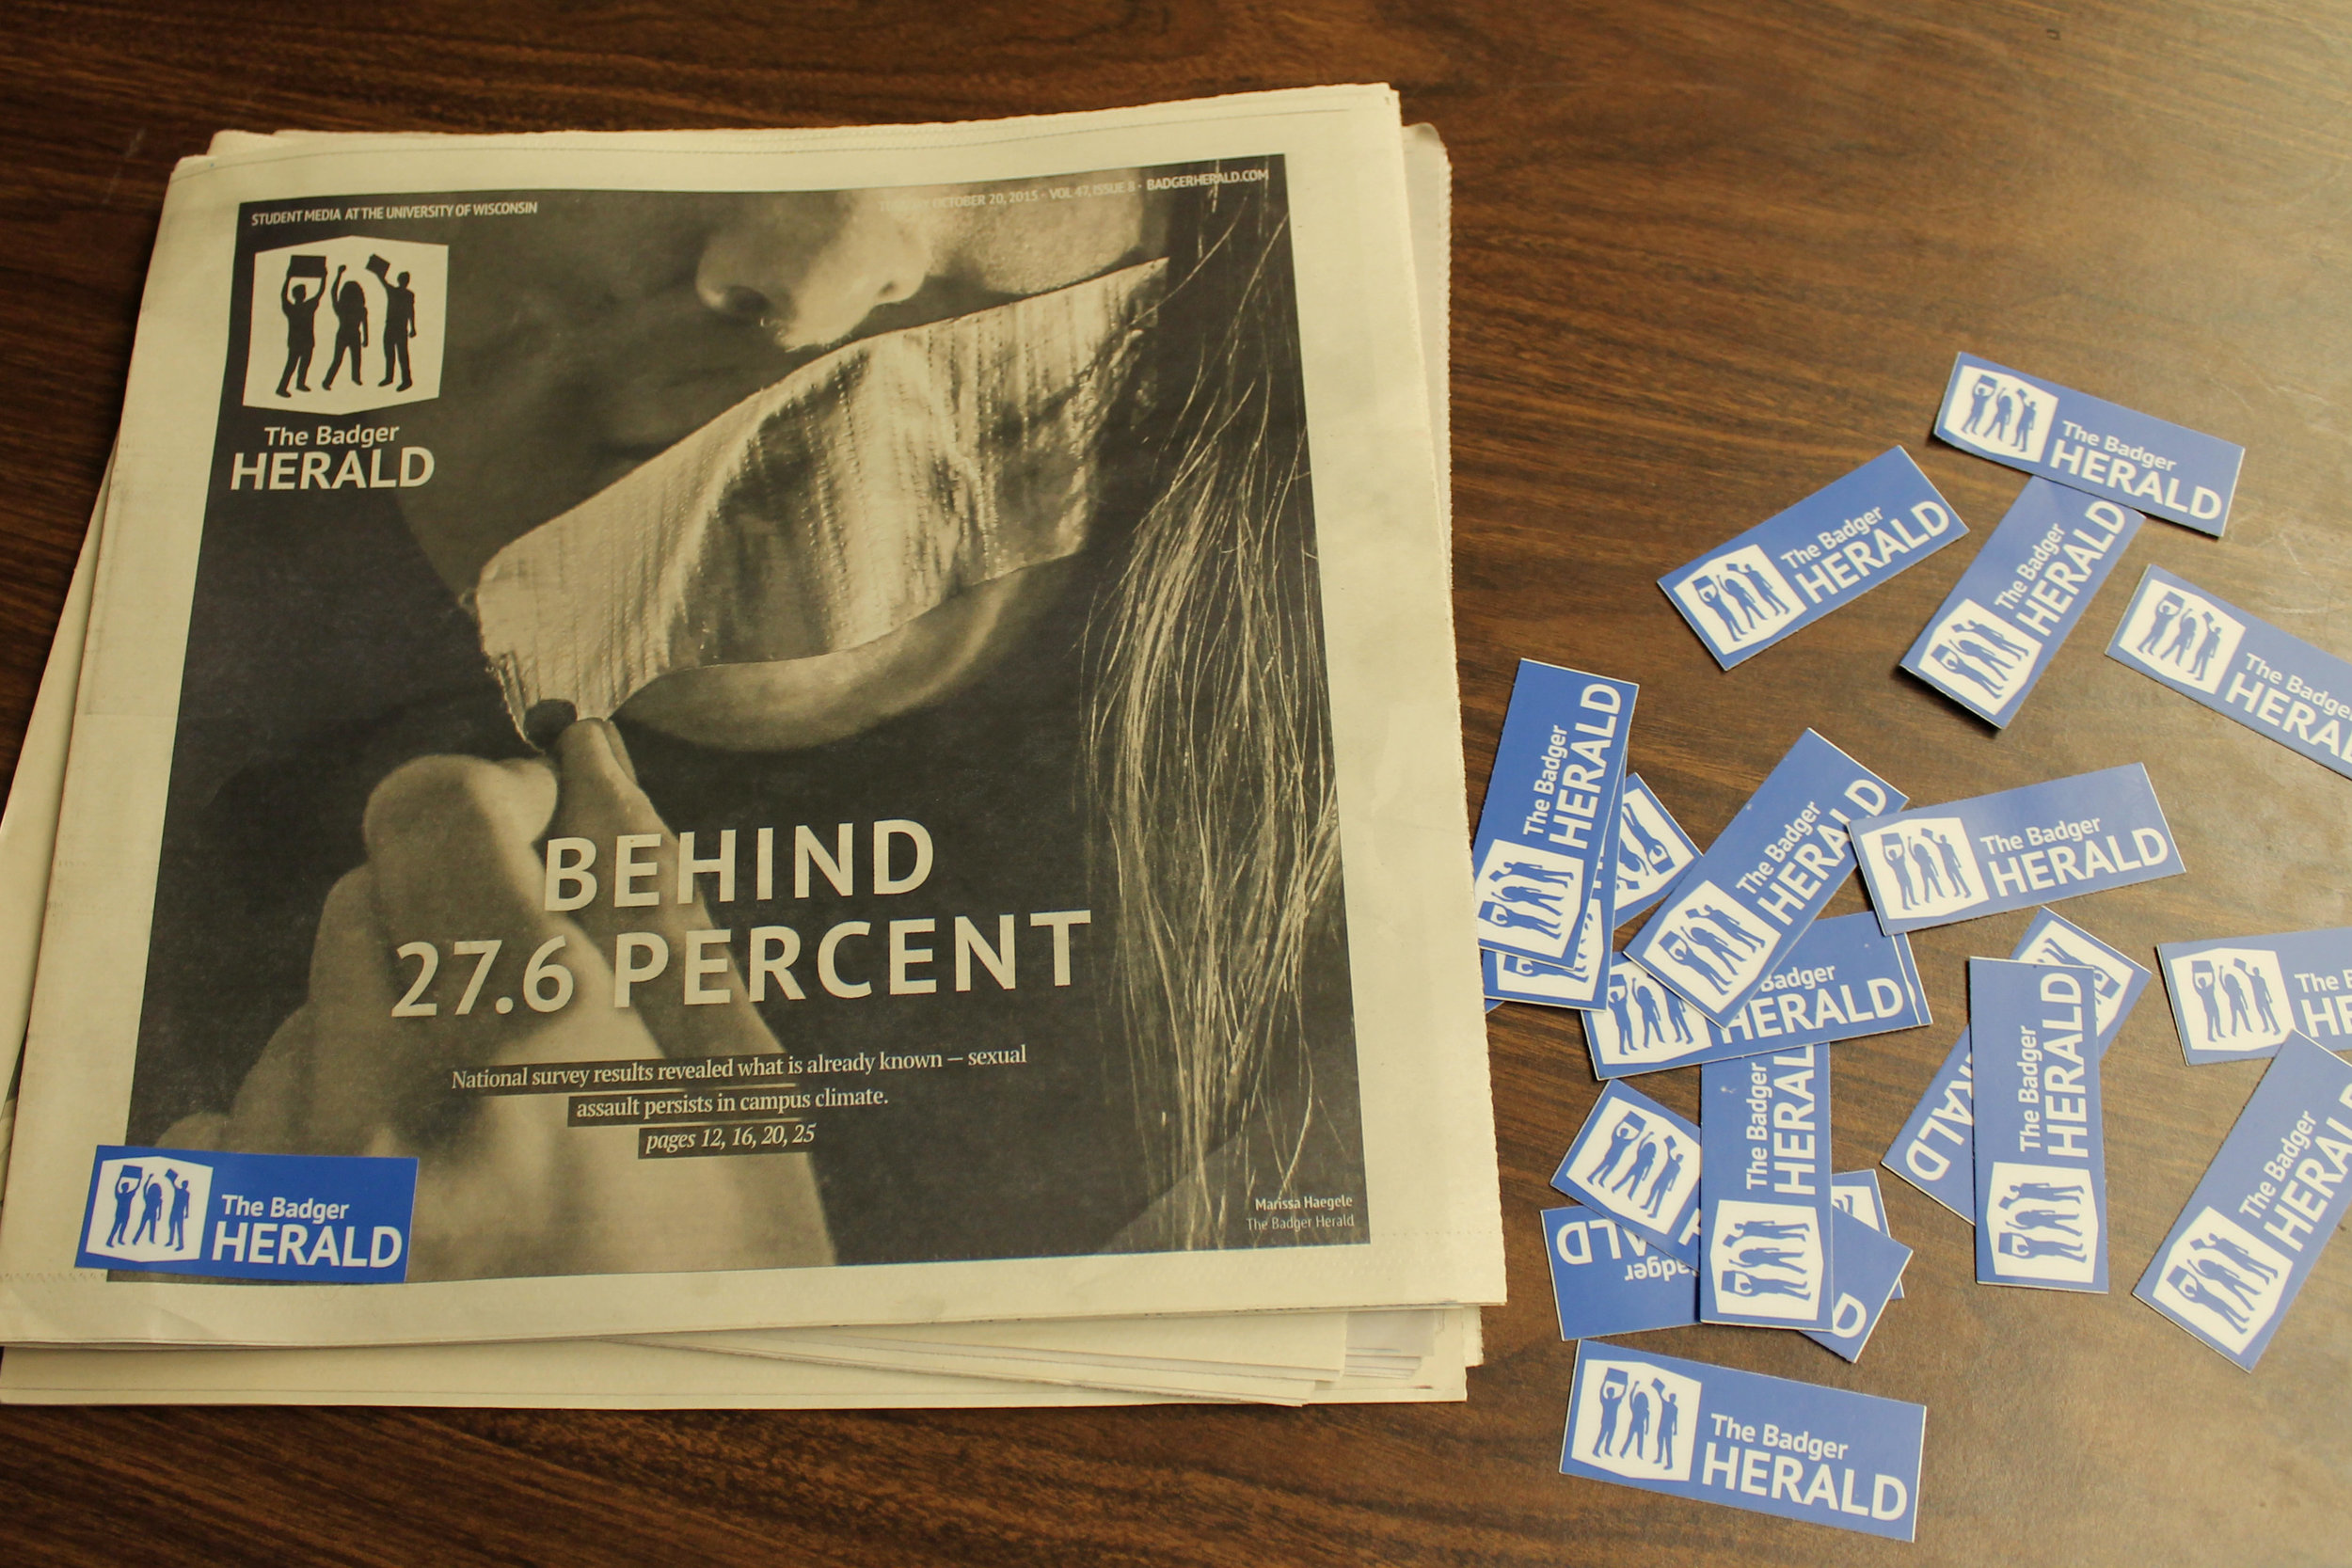 Since March 2014, The Badger Herald has written about sexual assault at least once every month.